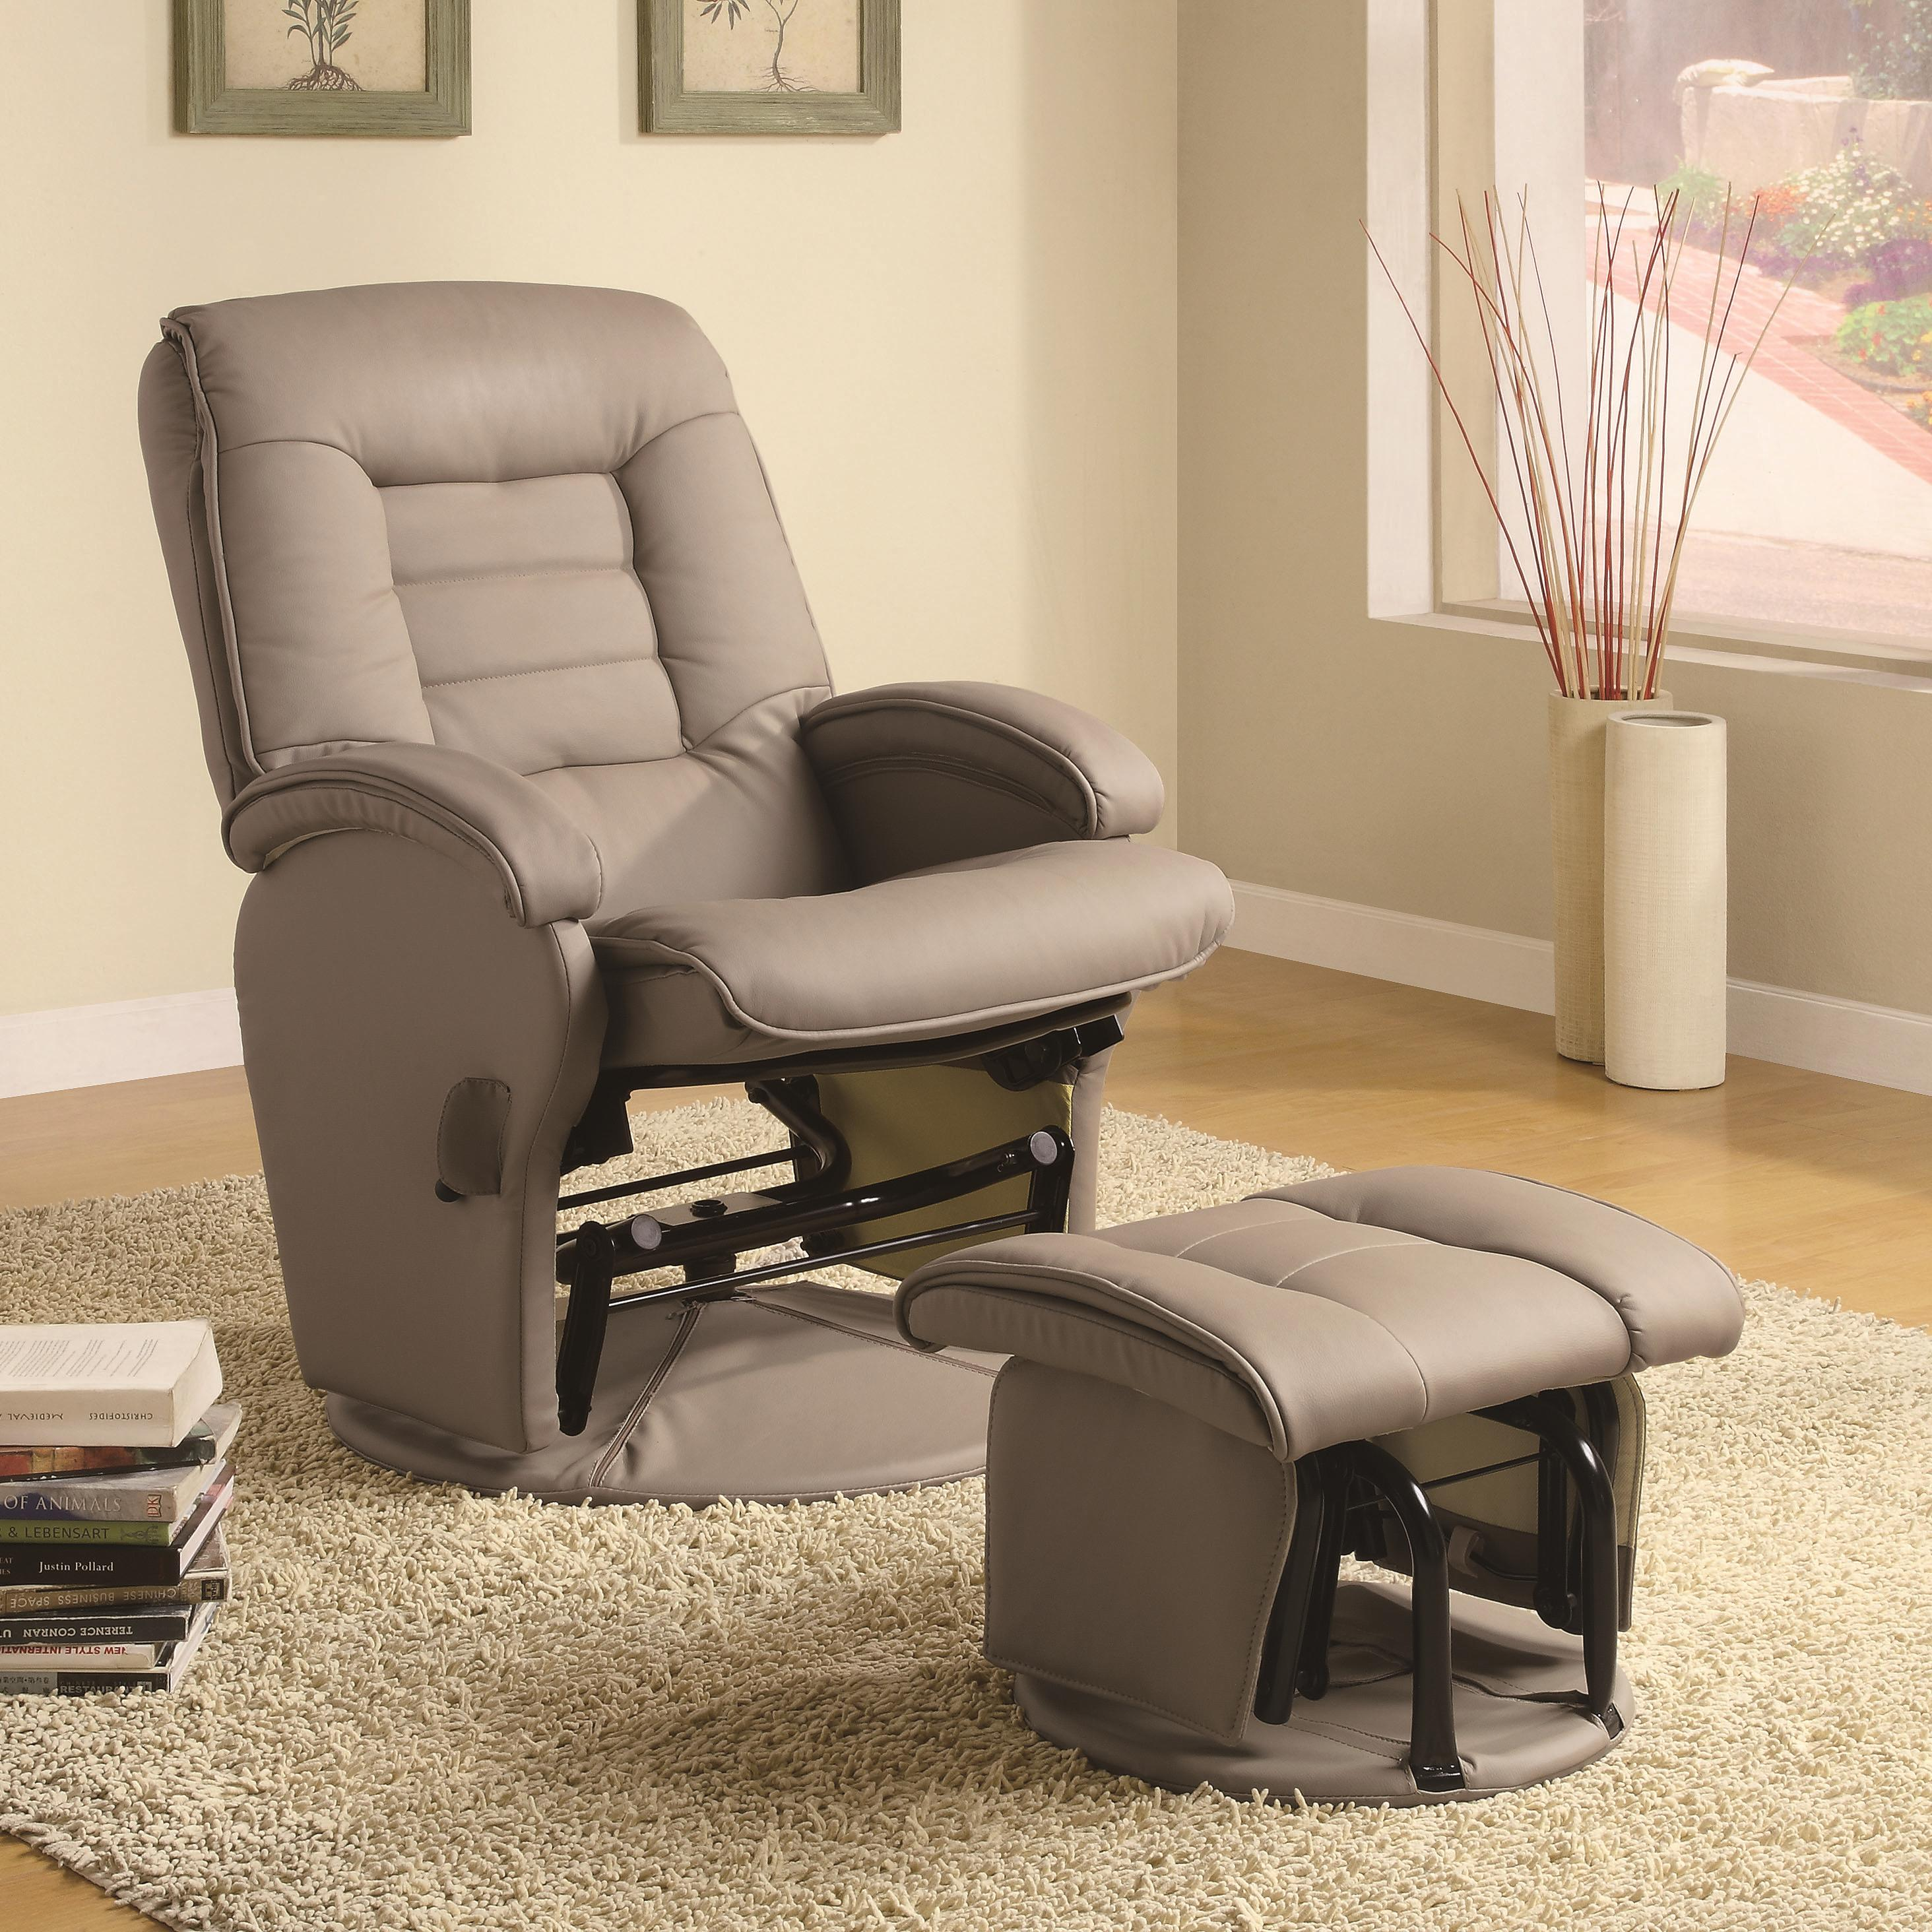 Fine Furniture Recliners With Ottomans 600166 Leather Like